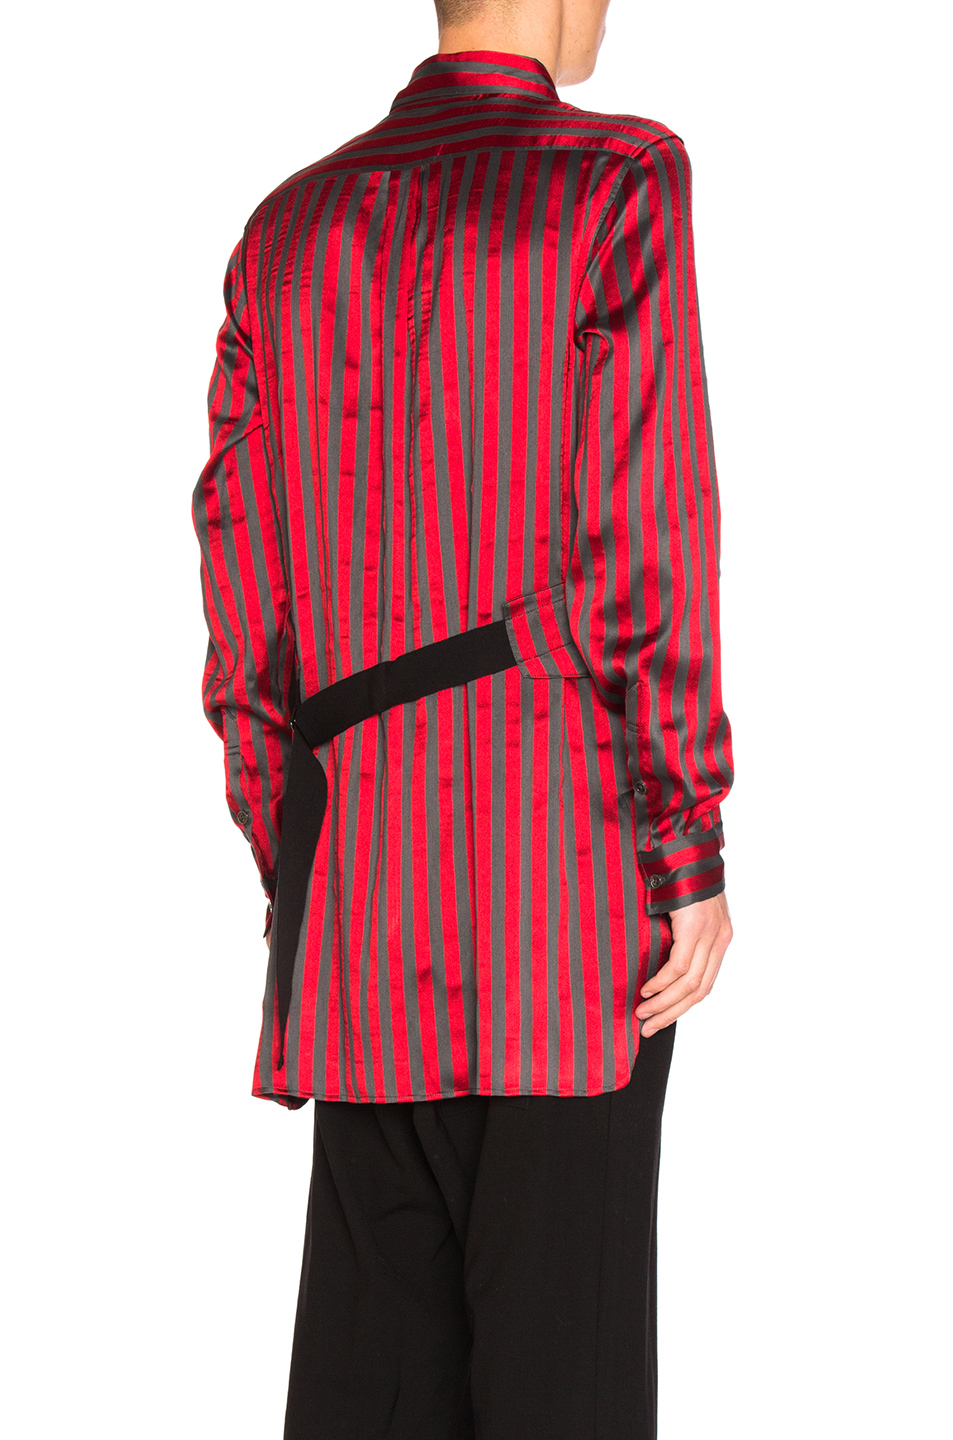 Ann Demeulemeester for FWRD Shirt in Gray,Red,Stripes